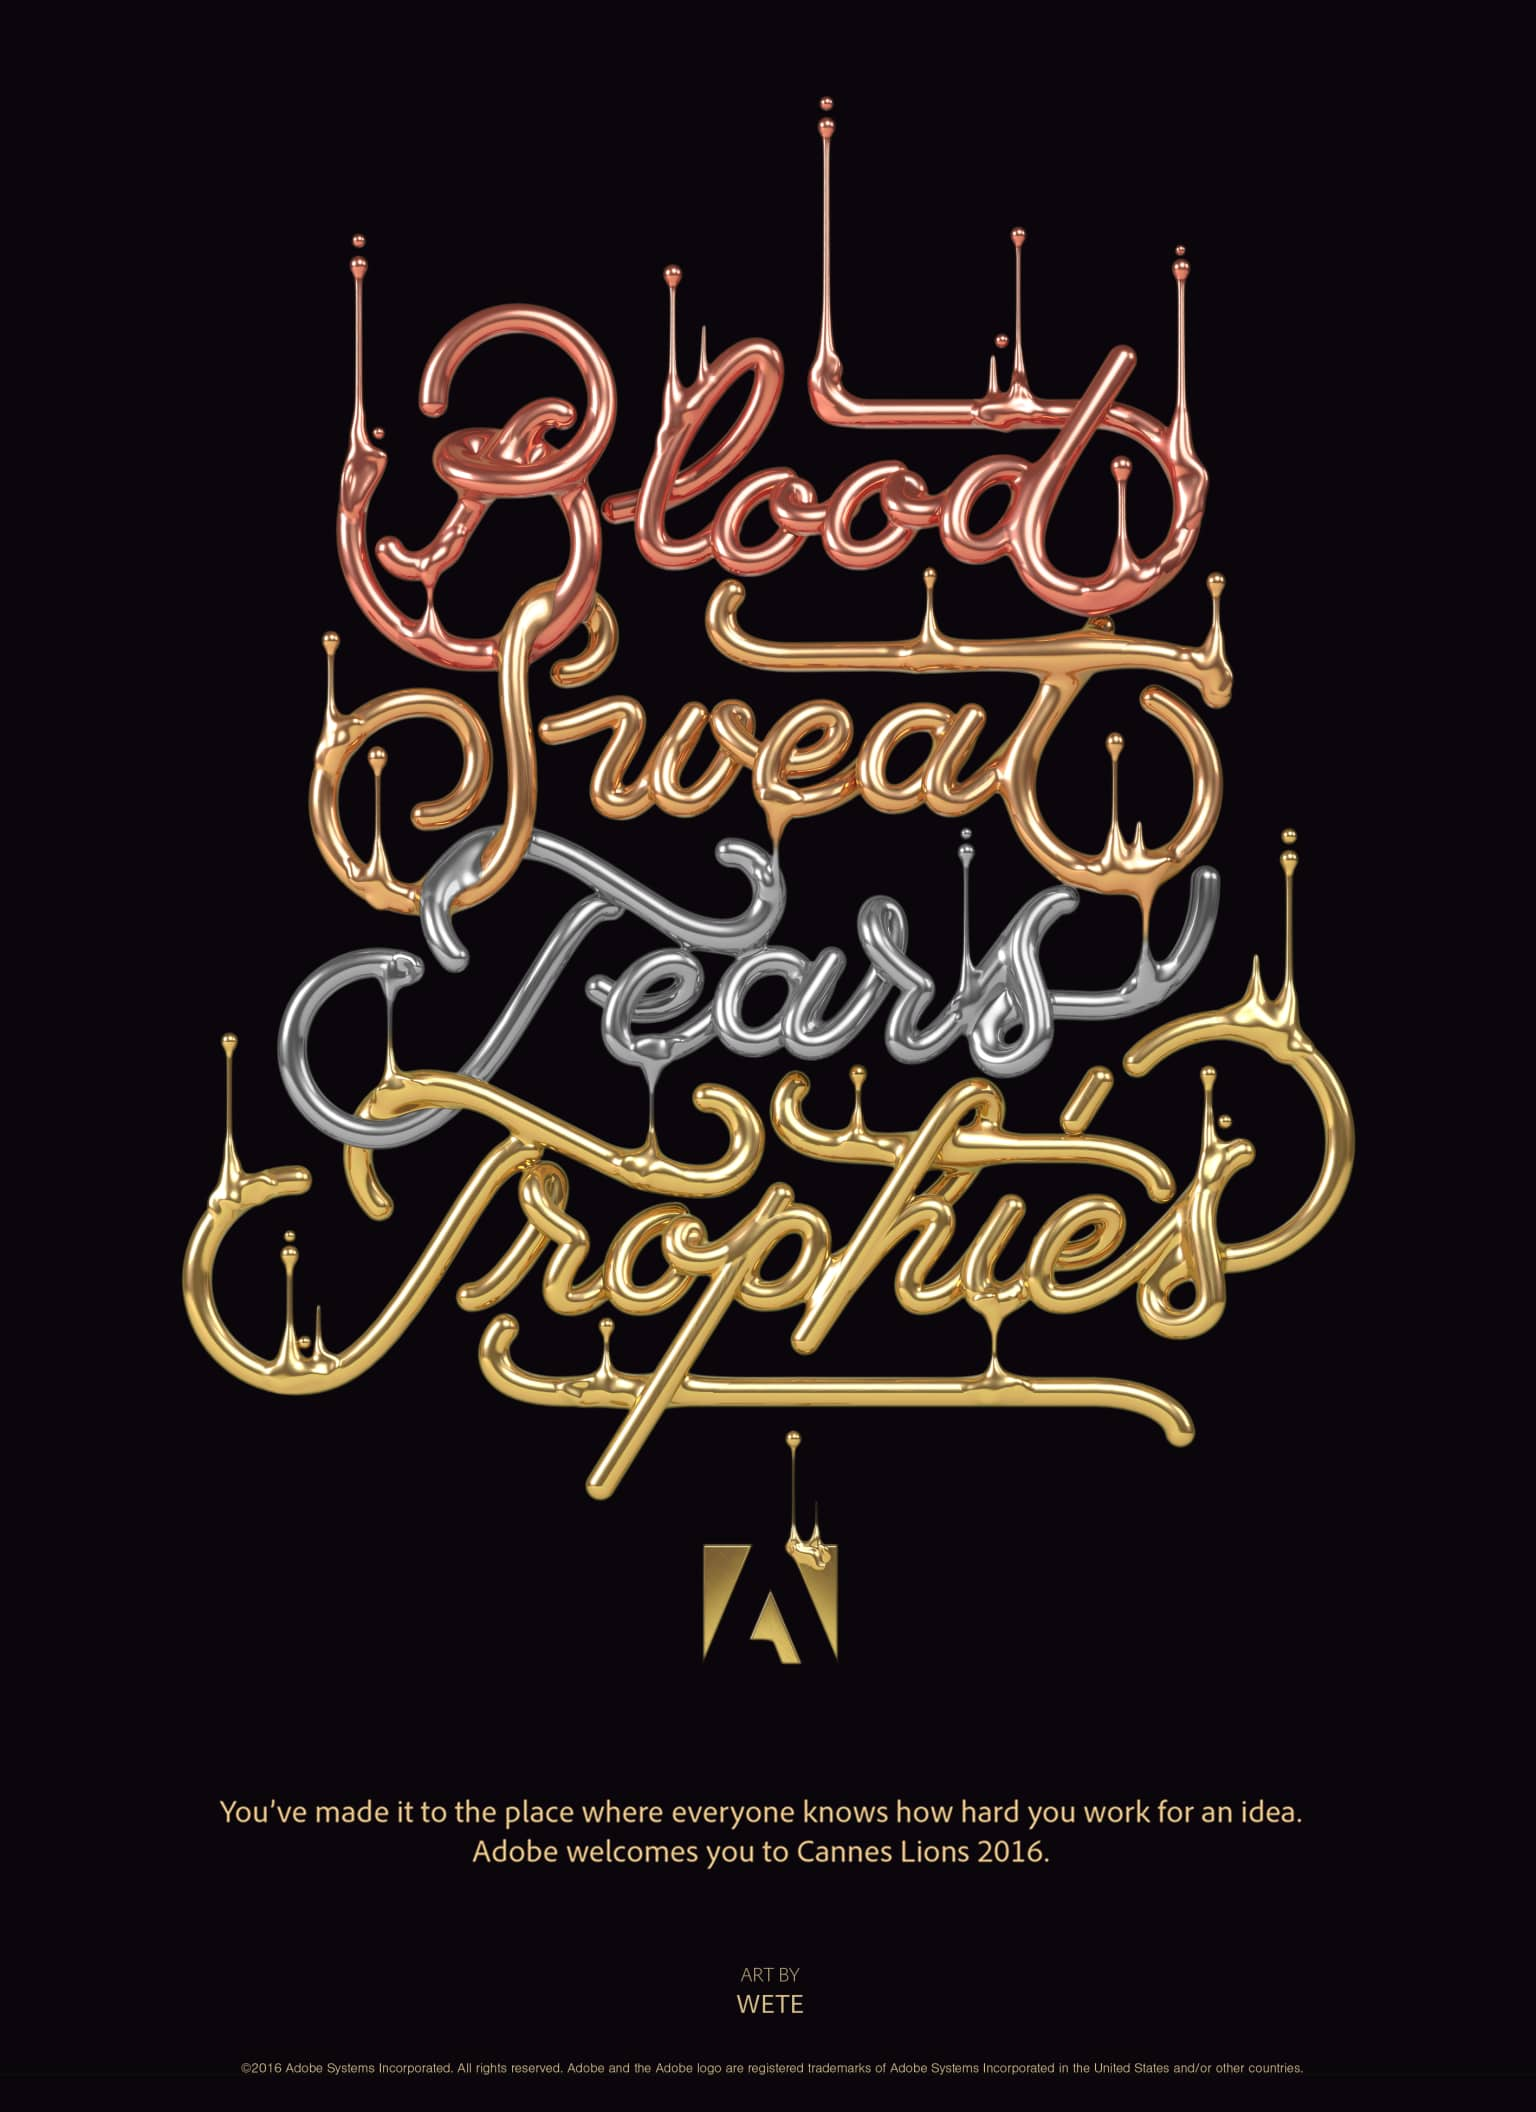 Adobe Cannes Lions